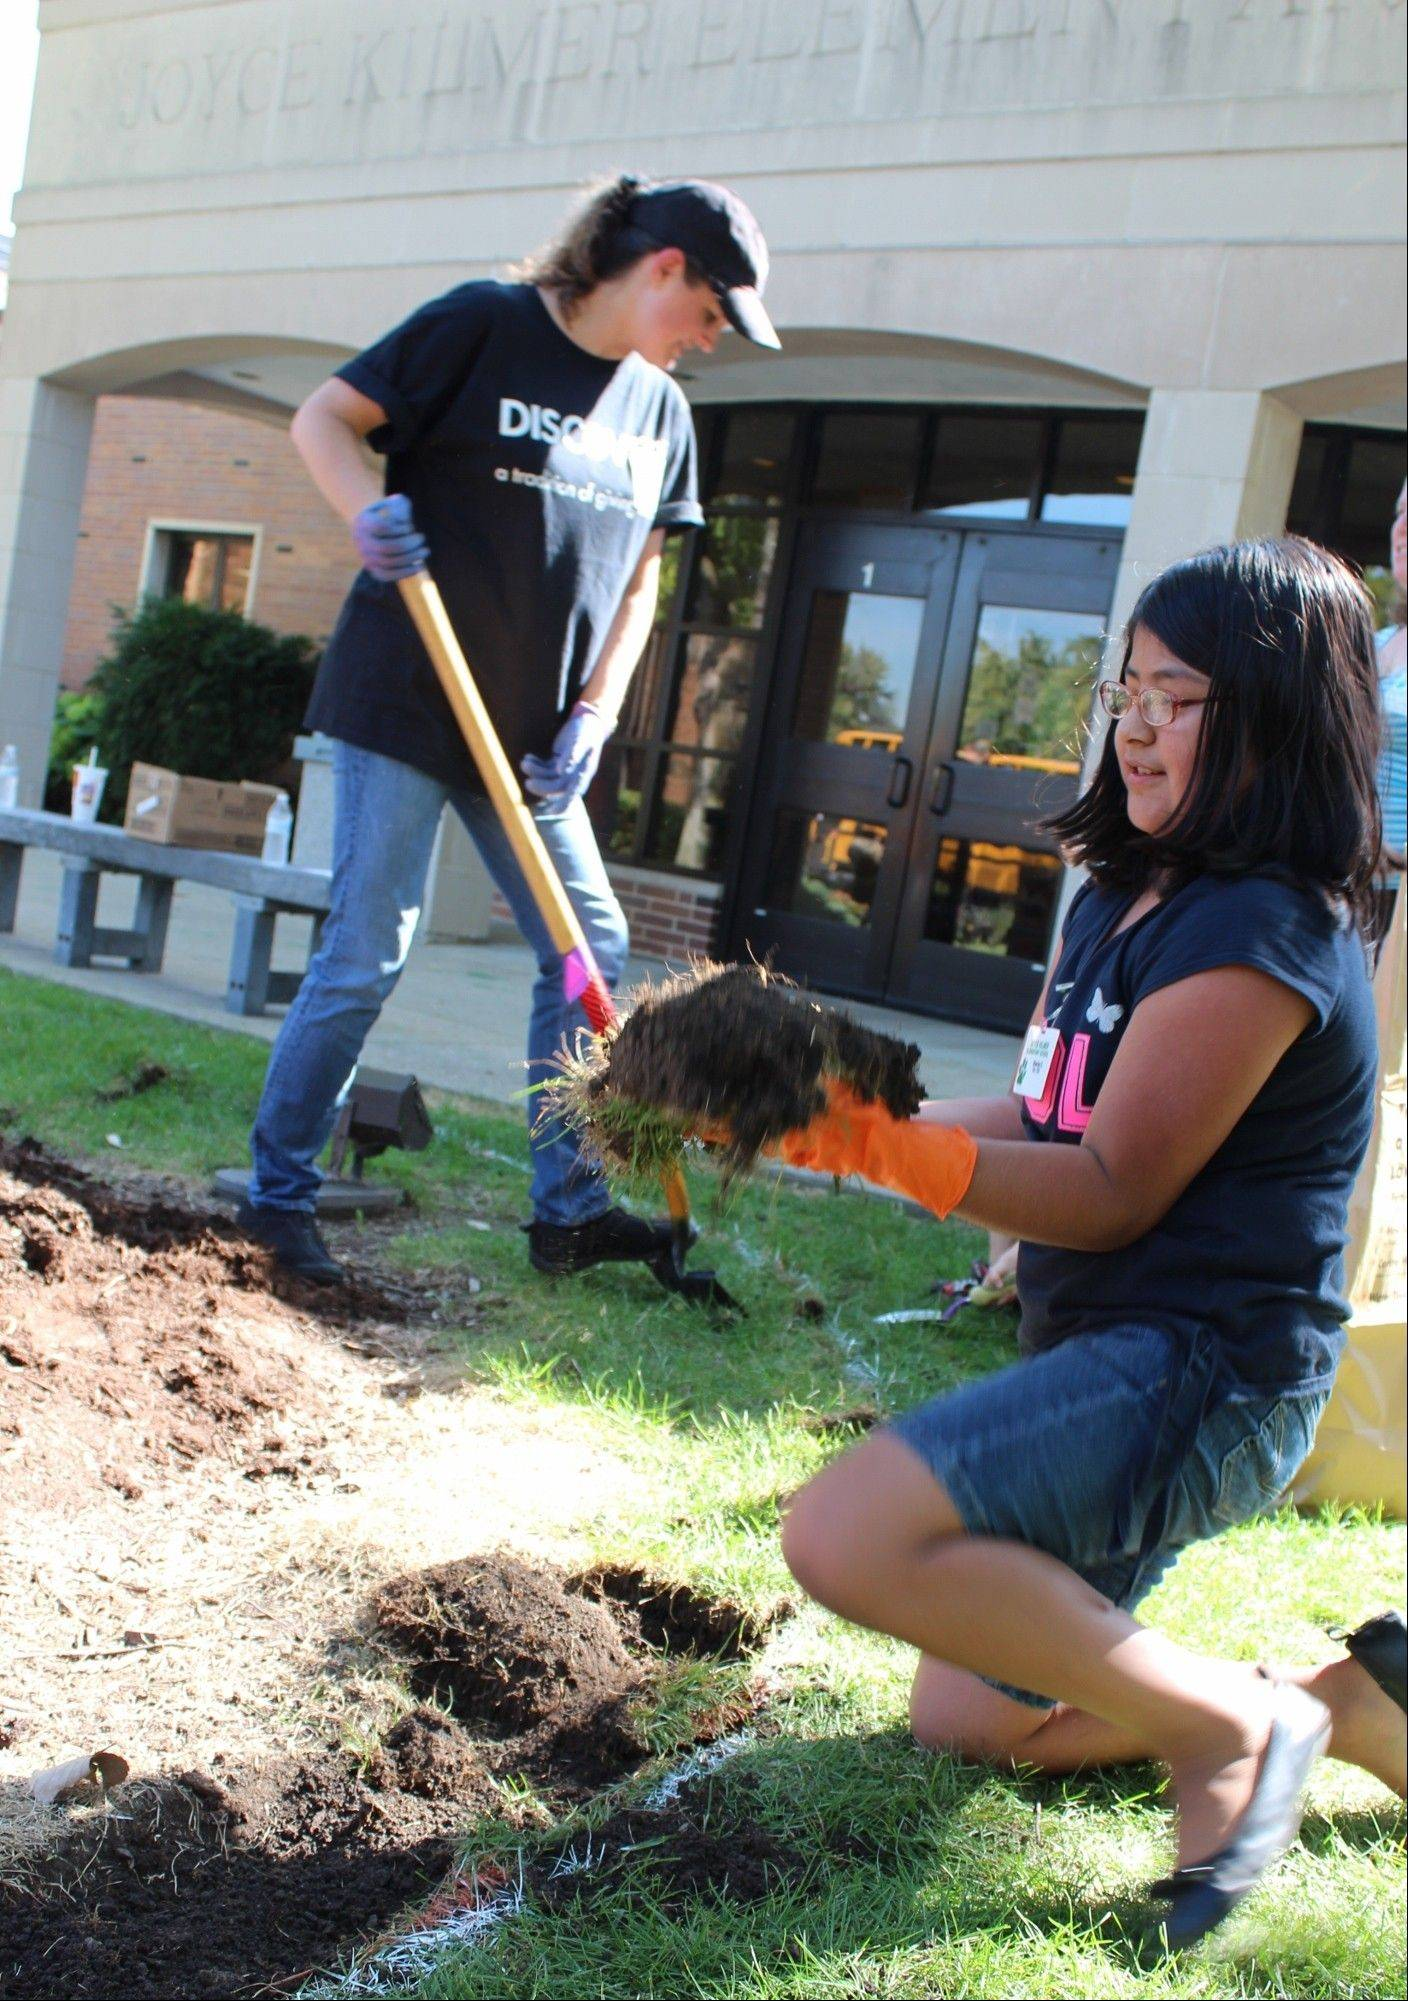 A volunteer from Discover Financial Services works to expand the heart-shaped flower bed in front of Kilmer Elementary School as third-grader Sharlyn C. removes excess sod.